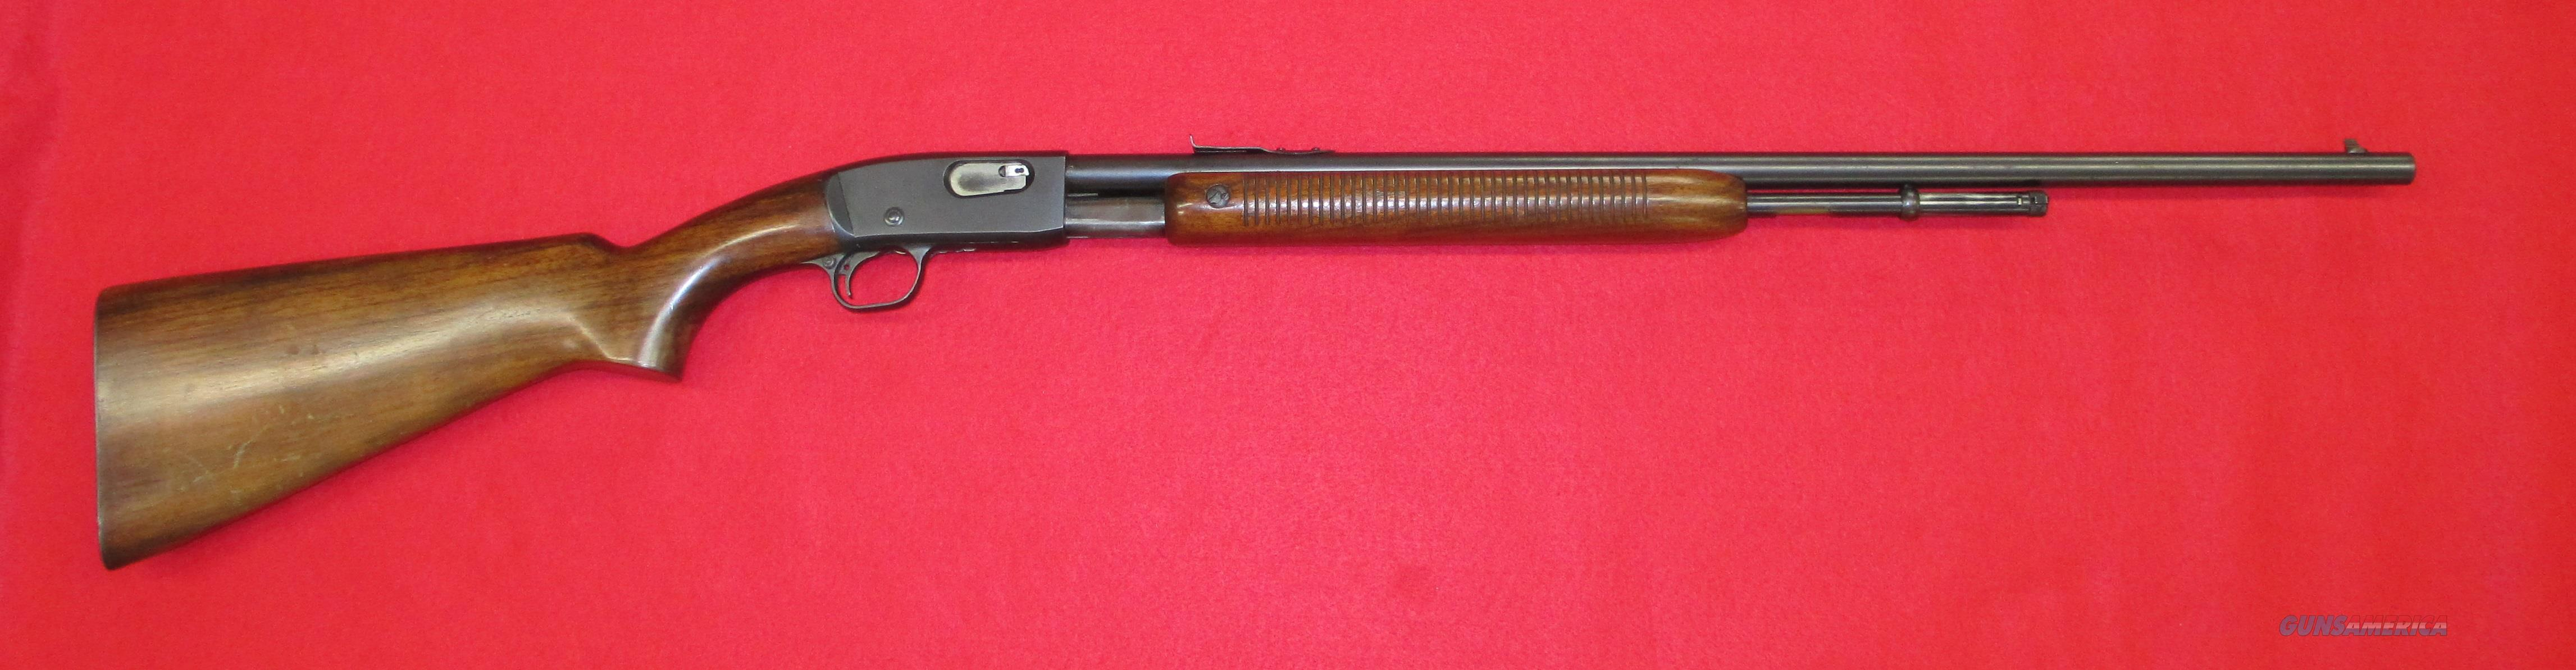 Remington Model 121, 22LR  Guns > Rifles > Remington Rifles - Modern > .22 Rimfire Models